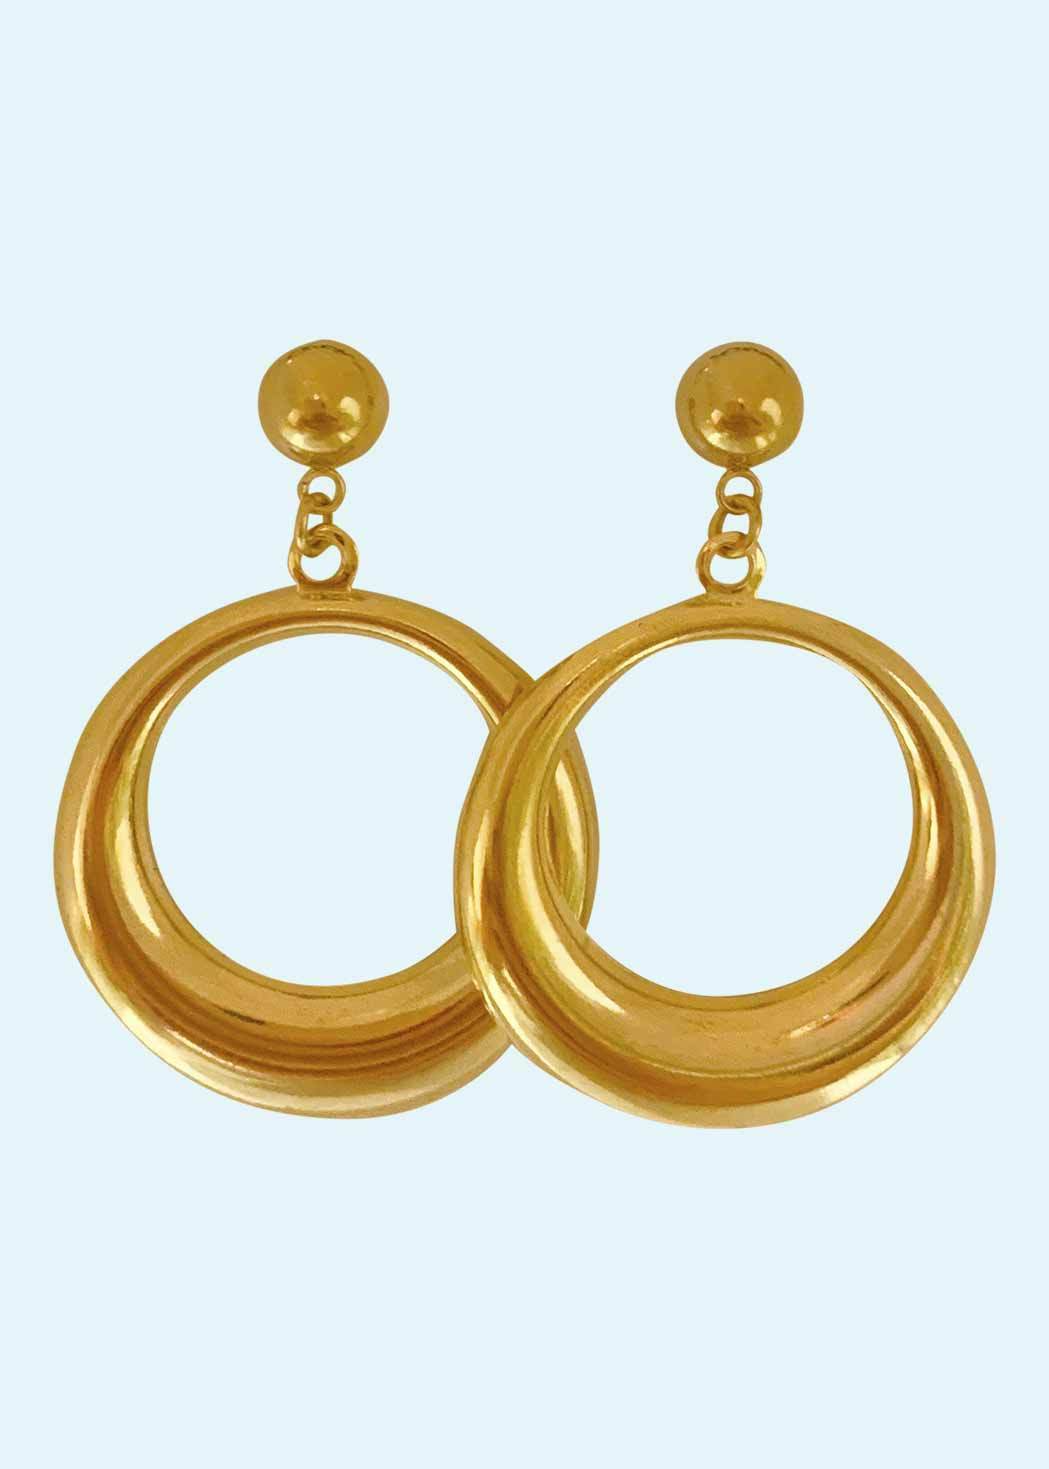 Retro style gold colored hoops earrings